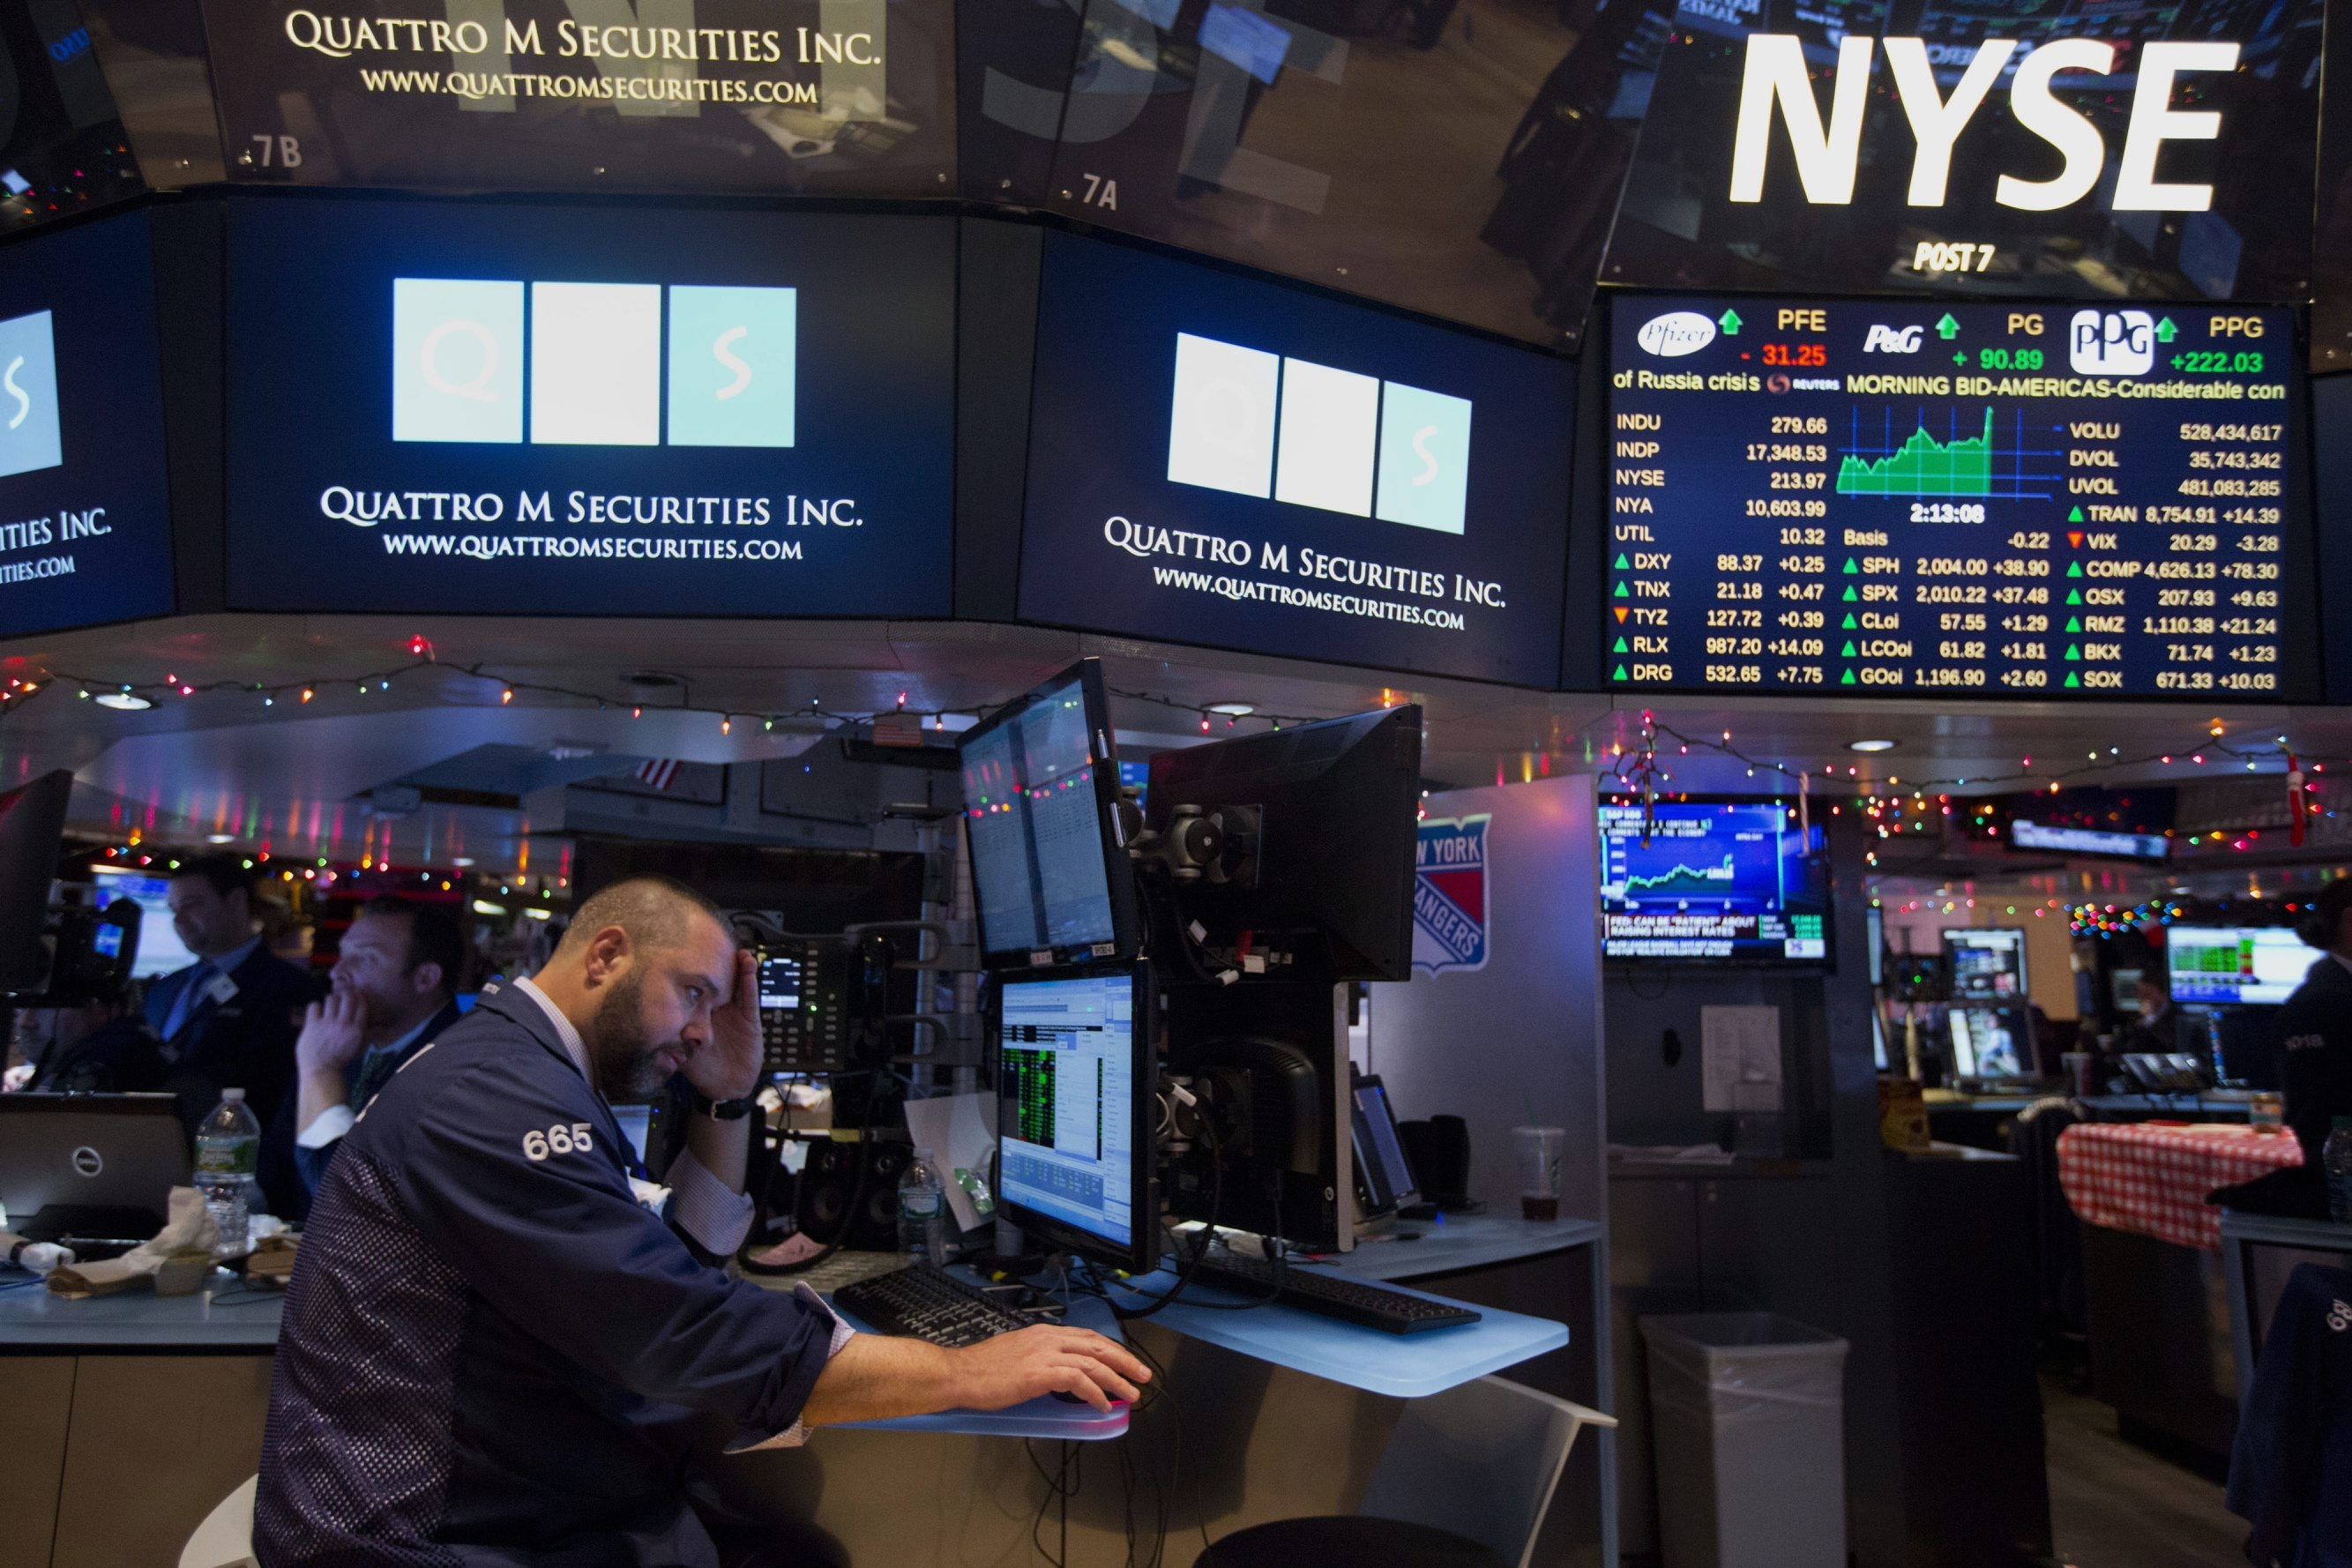 A trader works on the floor of the New York Stock Exchange in New York. Losses in technology stocks such as Microsoft Corp., Intel Corp. and IBM Corp. weighed down the Dow Jones industrial average.